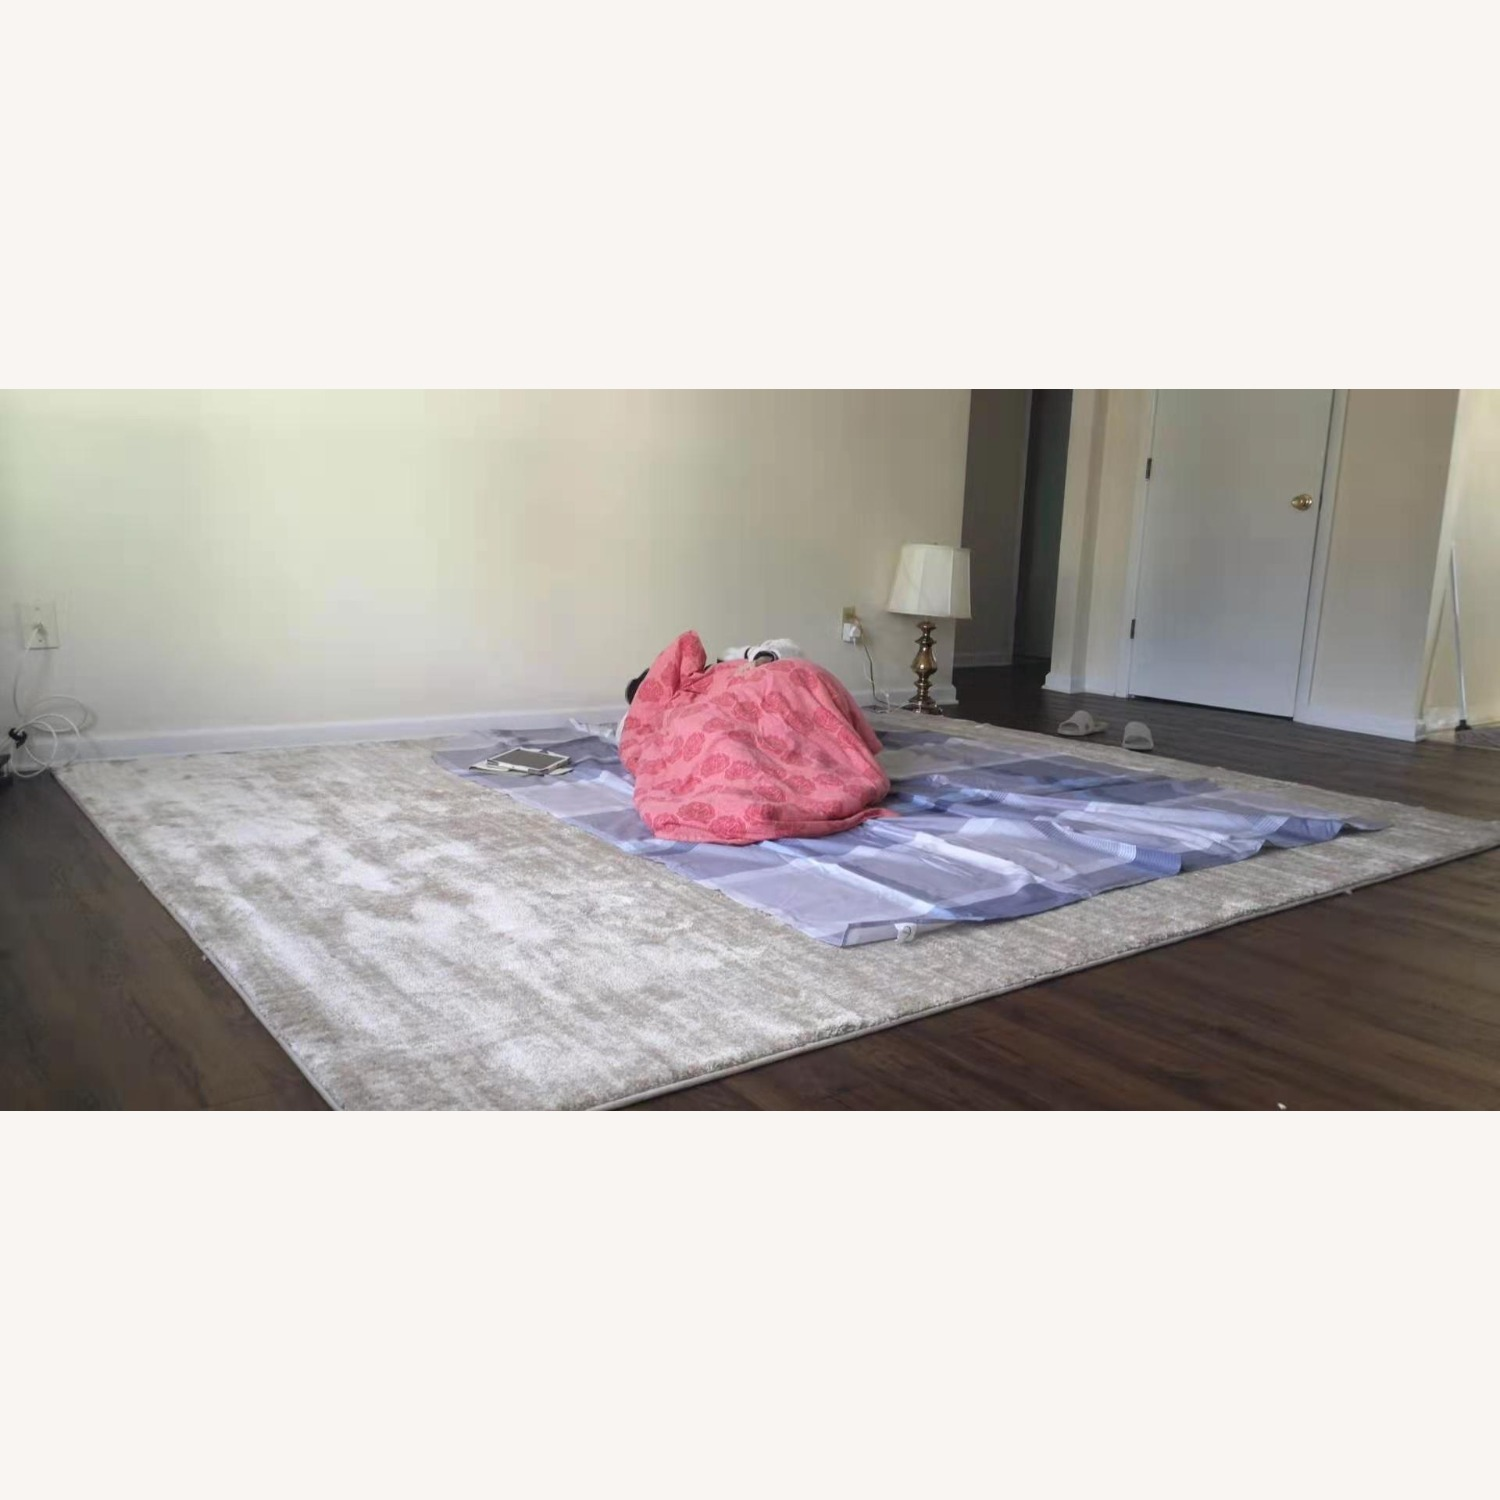 Home Decorator's  8 ft. x 10 ft. Solid Shag Area Rug - image-1